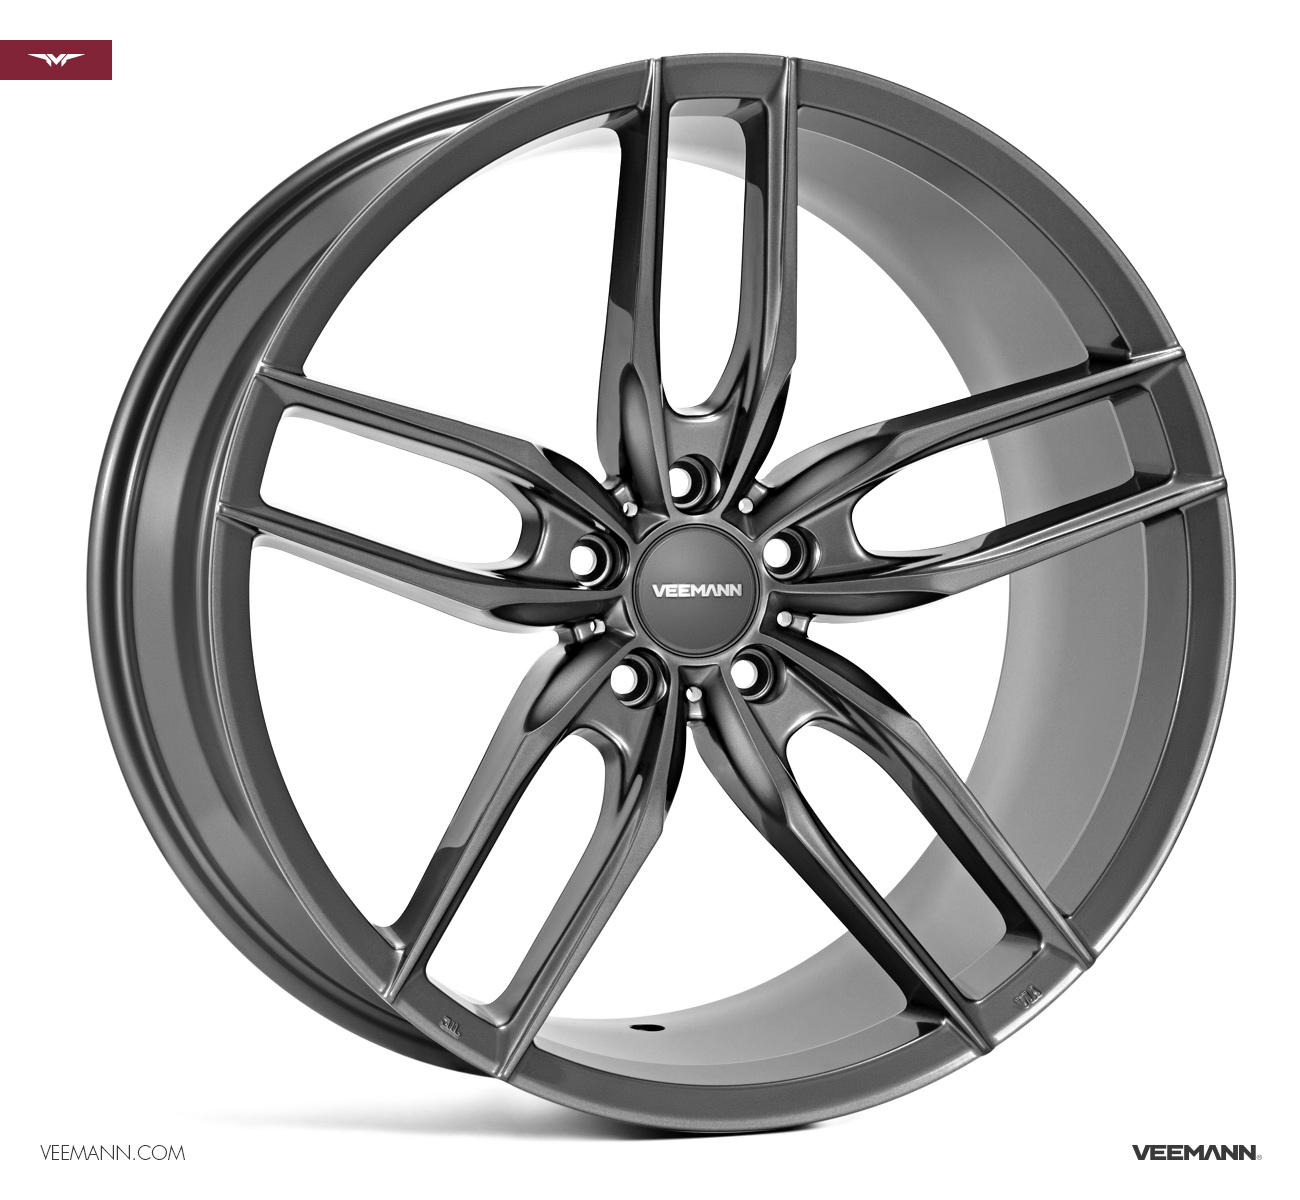 "NEW 19"" VEEMANN V-FS28 ALLOY WHEELS IN GLOSS GRAPHITE WITH DEEPER CONCAVE 9.5"" REARS"